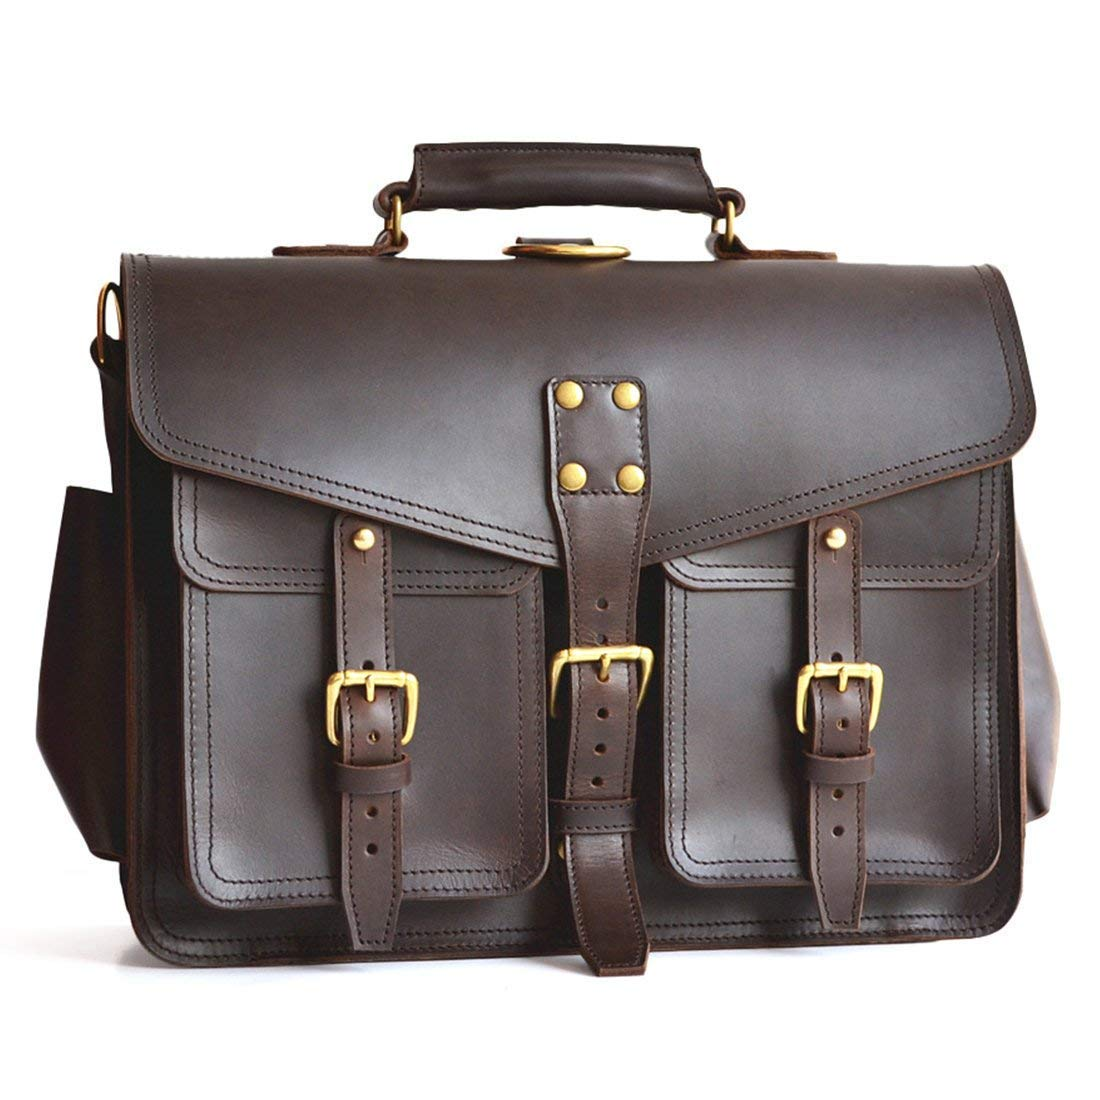 Marlondo Leather Wing Briefcase - Handmade Leather Messenger Bag, Mens Handmade Leather Satchel for Laptops